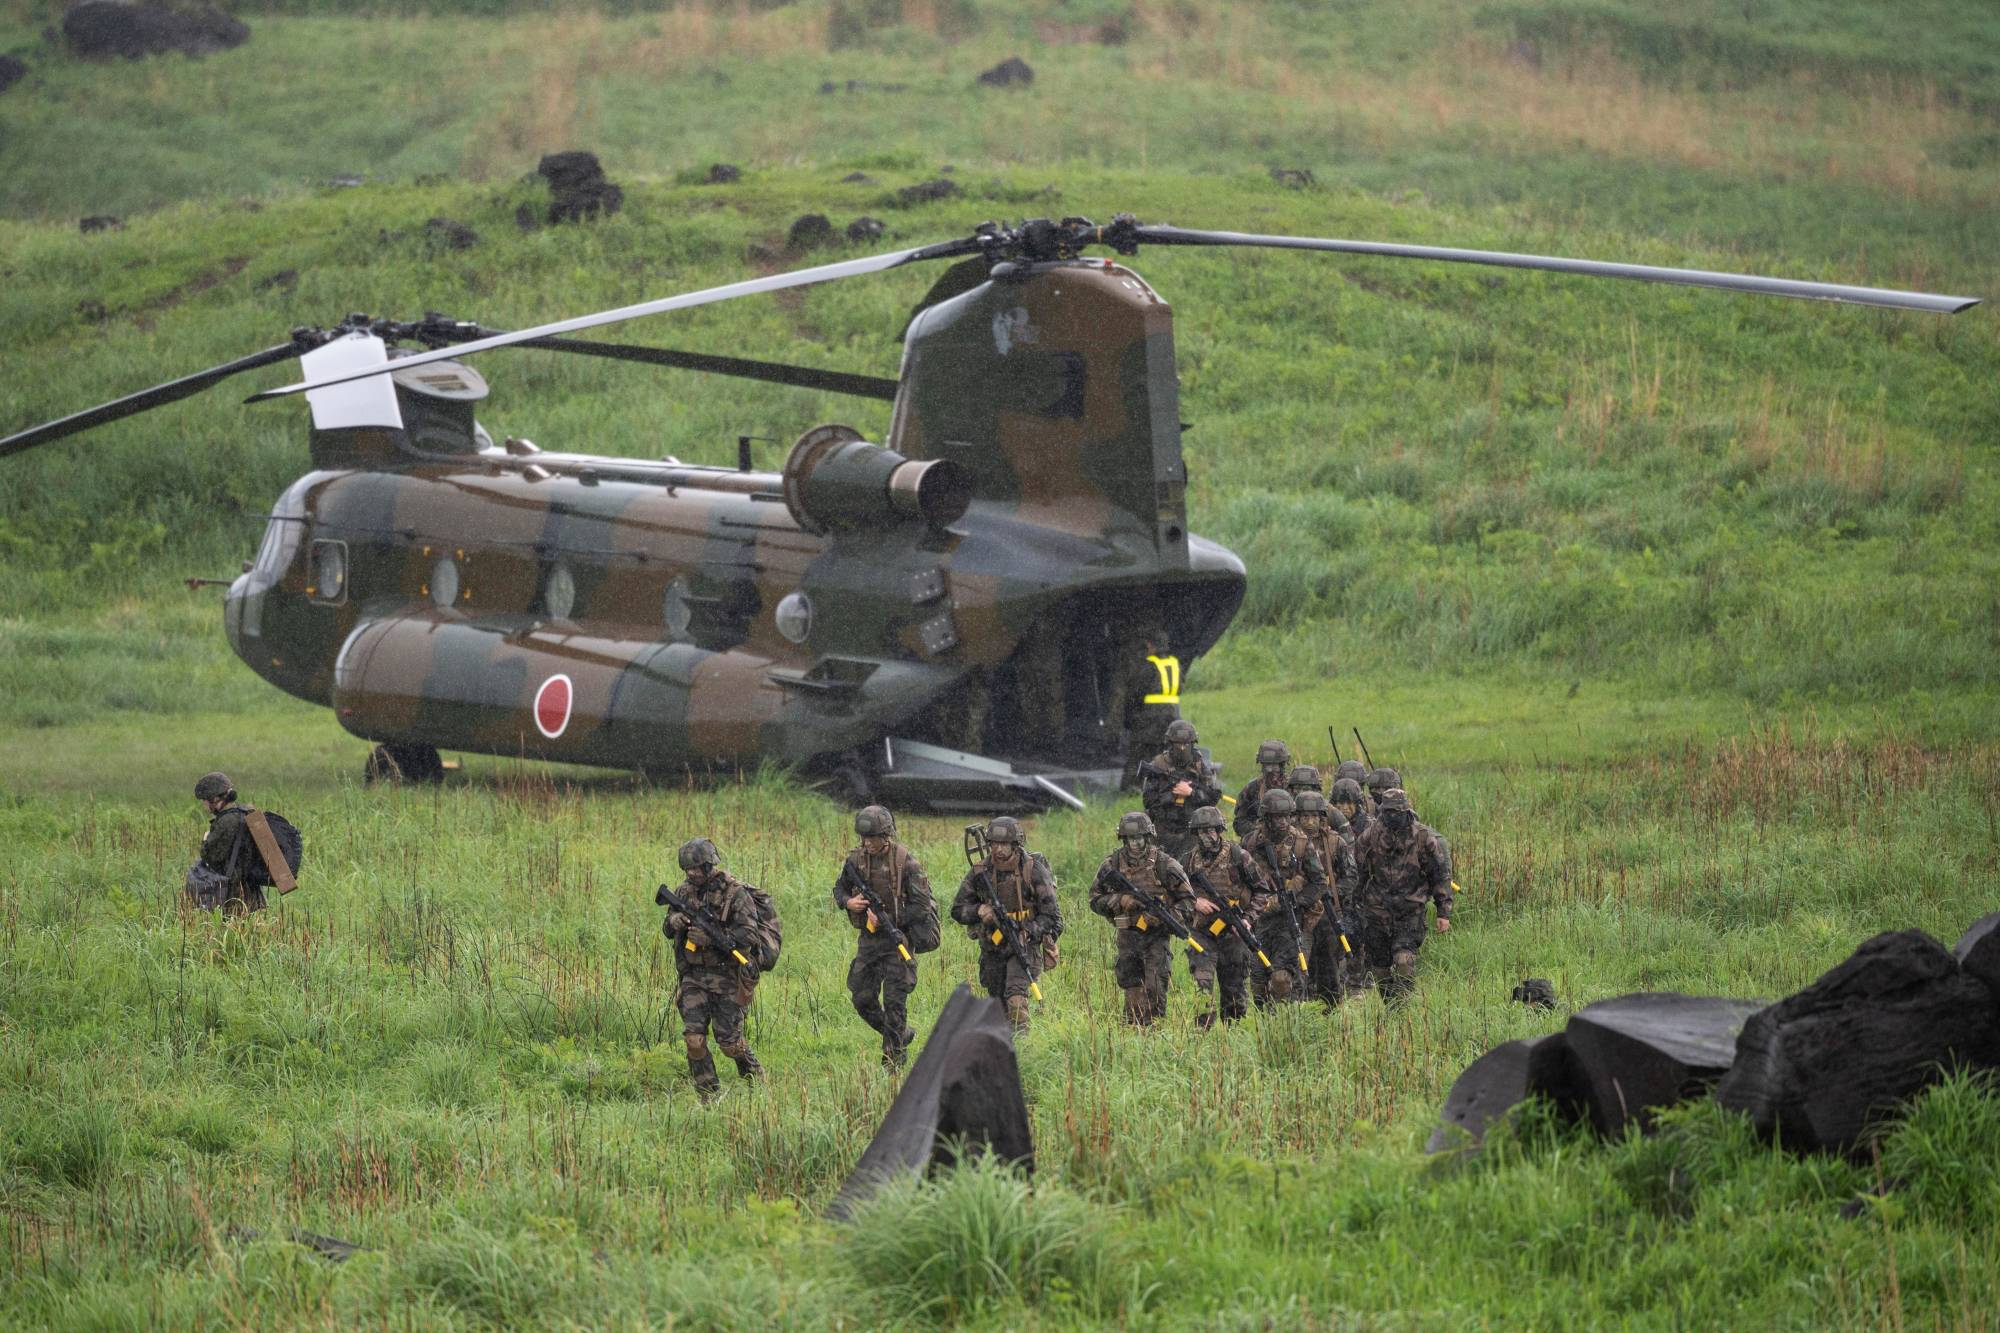 French soldiers walk away from a Chinook helicopter during a joint military drill between the Self-Defense Forces, French army and U.S. Marines at the Kirishima exercise area in Ebino, Miyazaki Prefecture, on Saturday.   POOL / VIA REUTERS